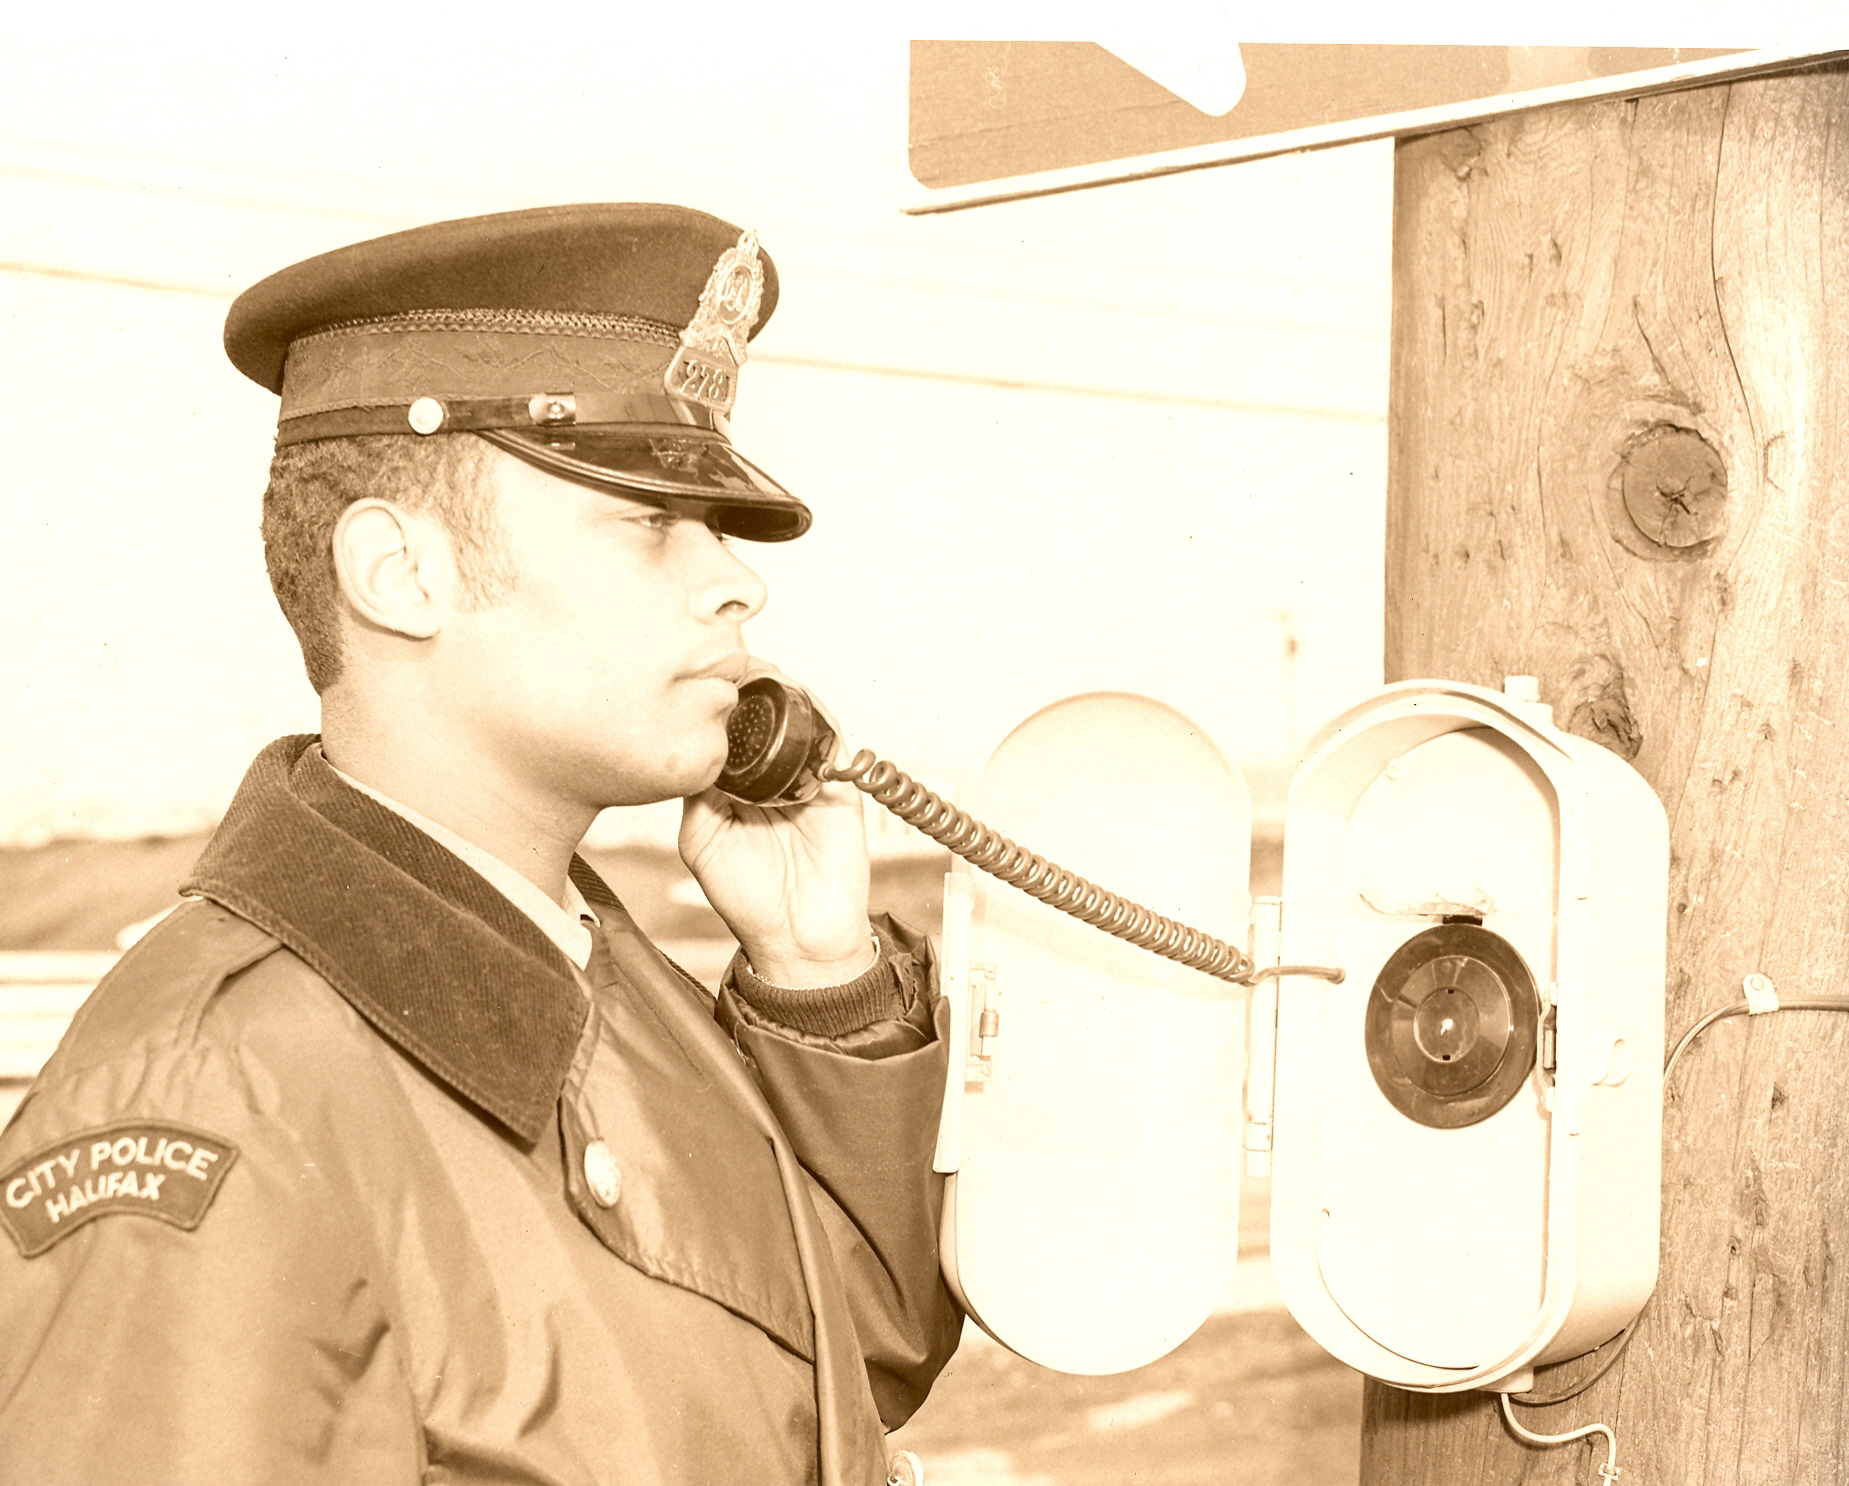 Black and white photo of African Nova Scotian officer using call-box